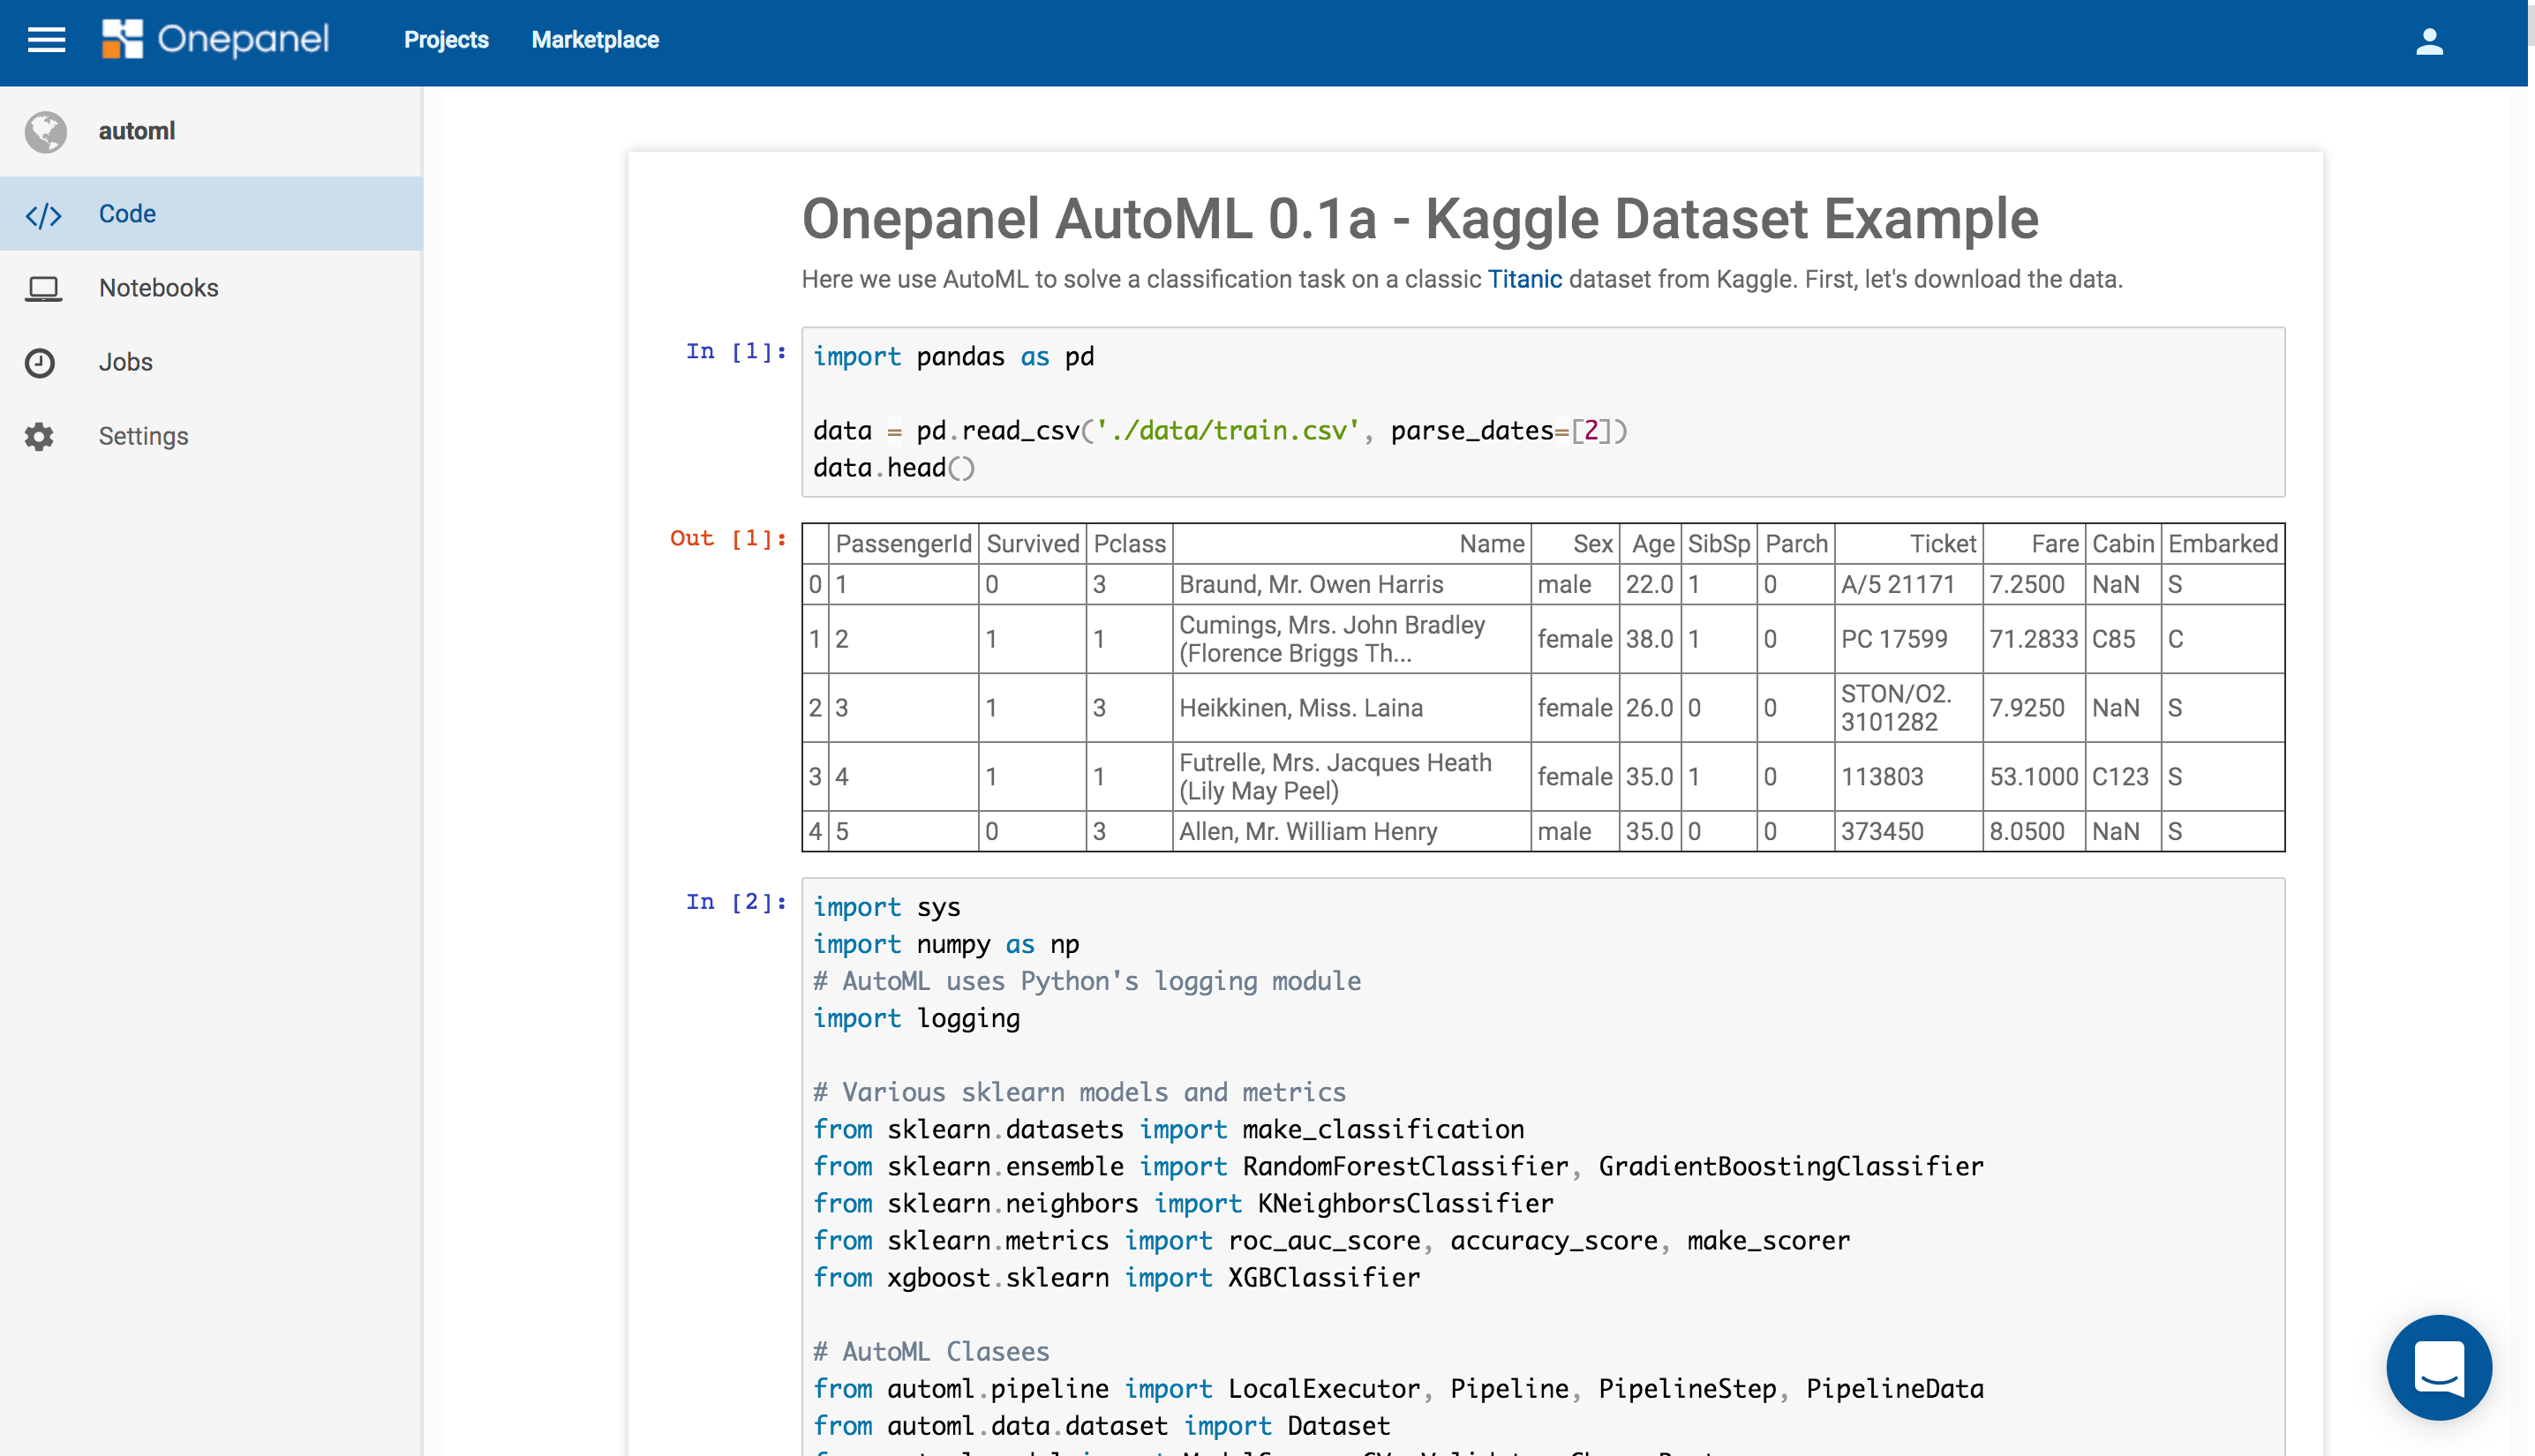 ONLINE ONLY: How to use parallel GPUs to compete on Kaggle